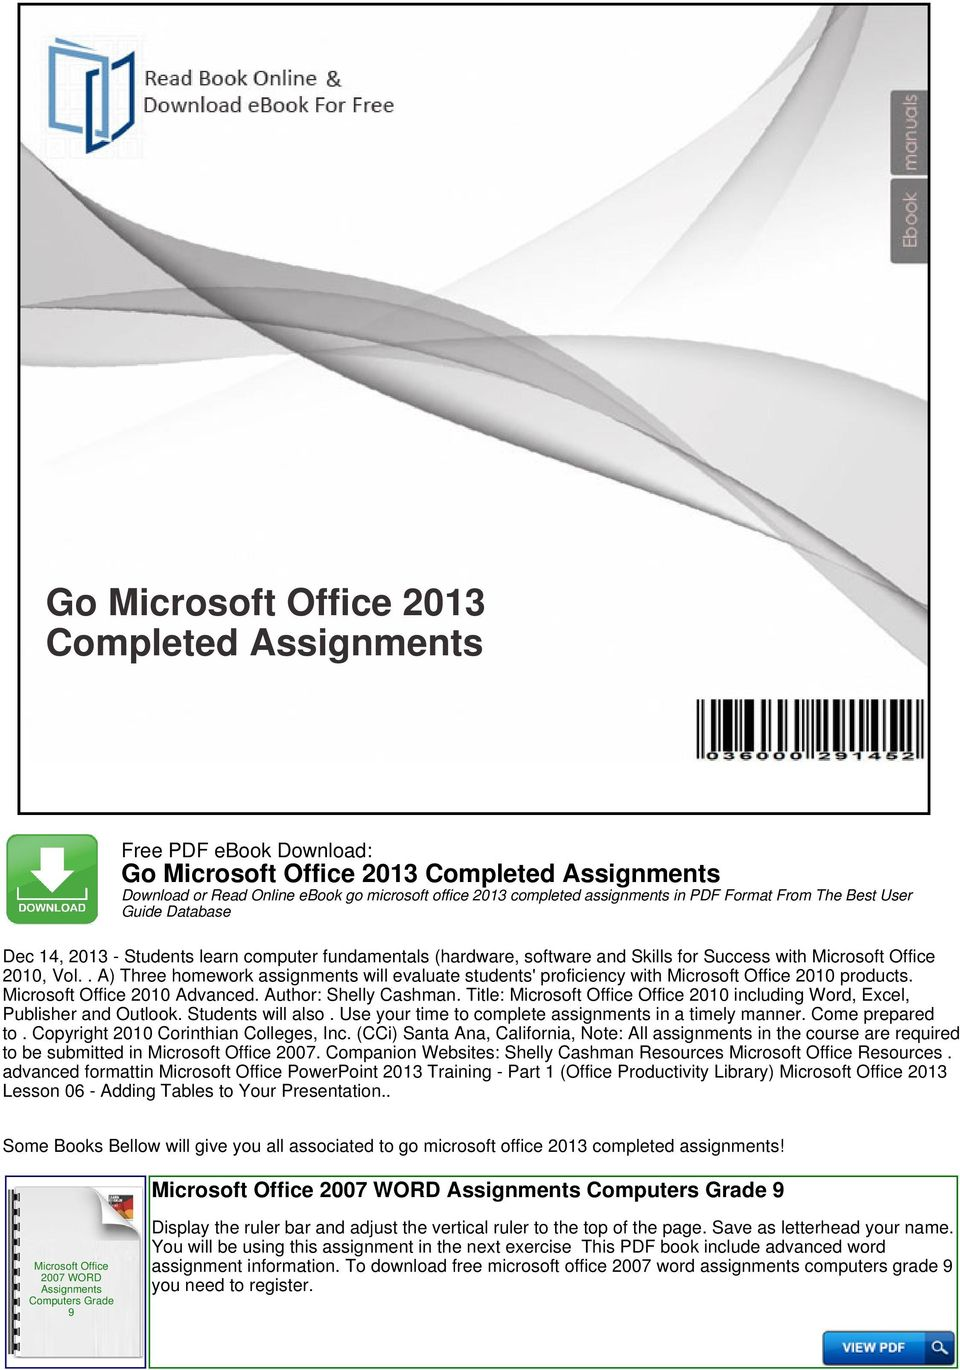 Go microsoft office 2013 completed assignments pdf a three homework assignments will evaluate students proficiency with 2010 products 2010 fandeluxe Choice Image